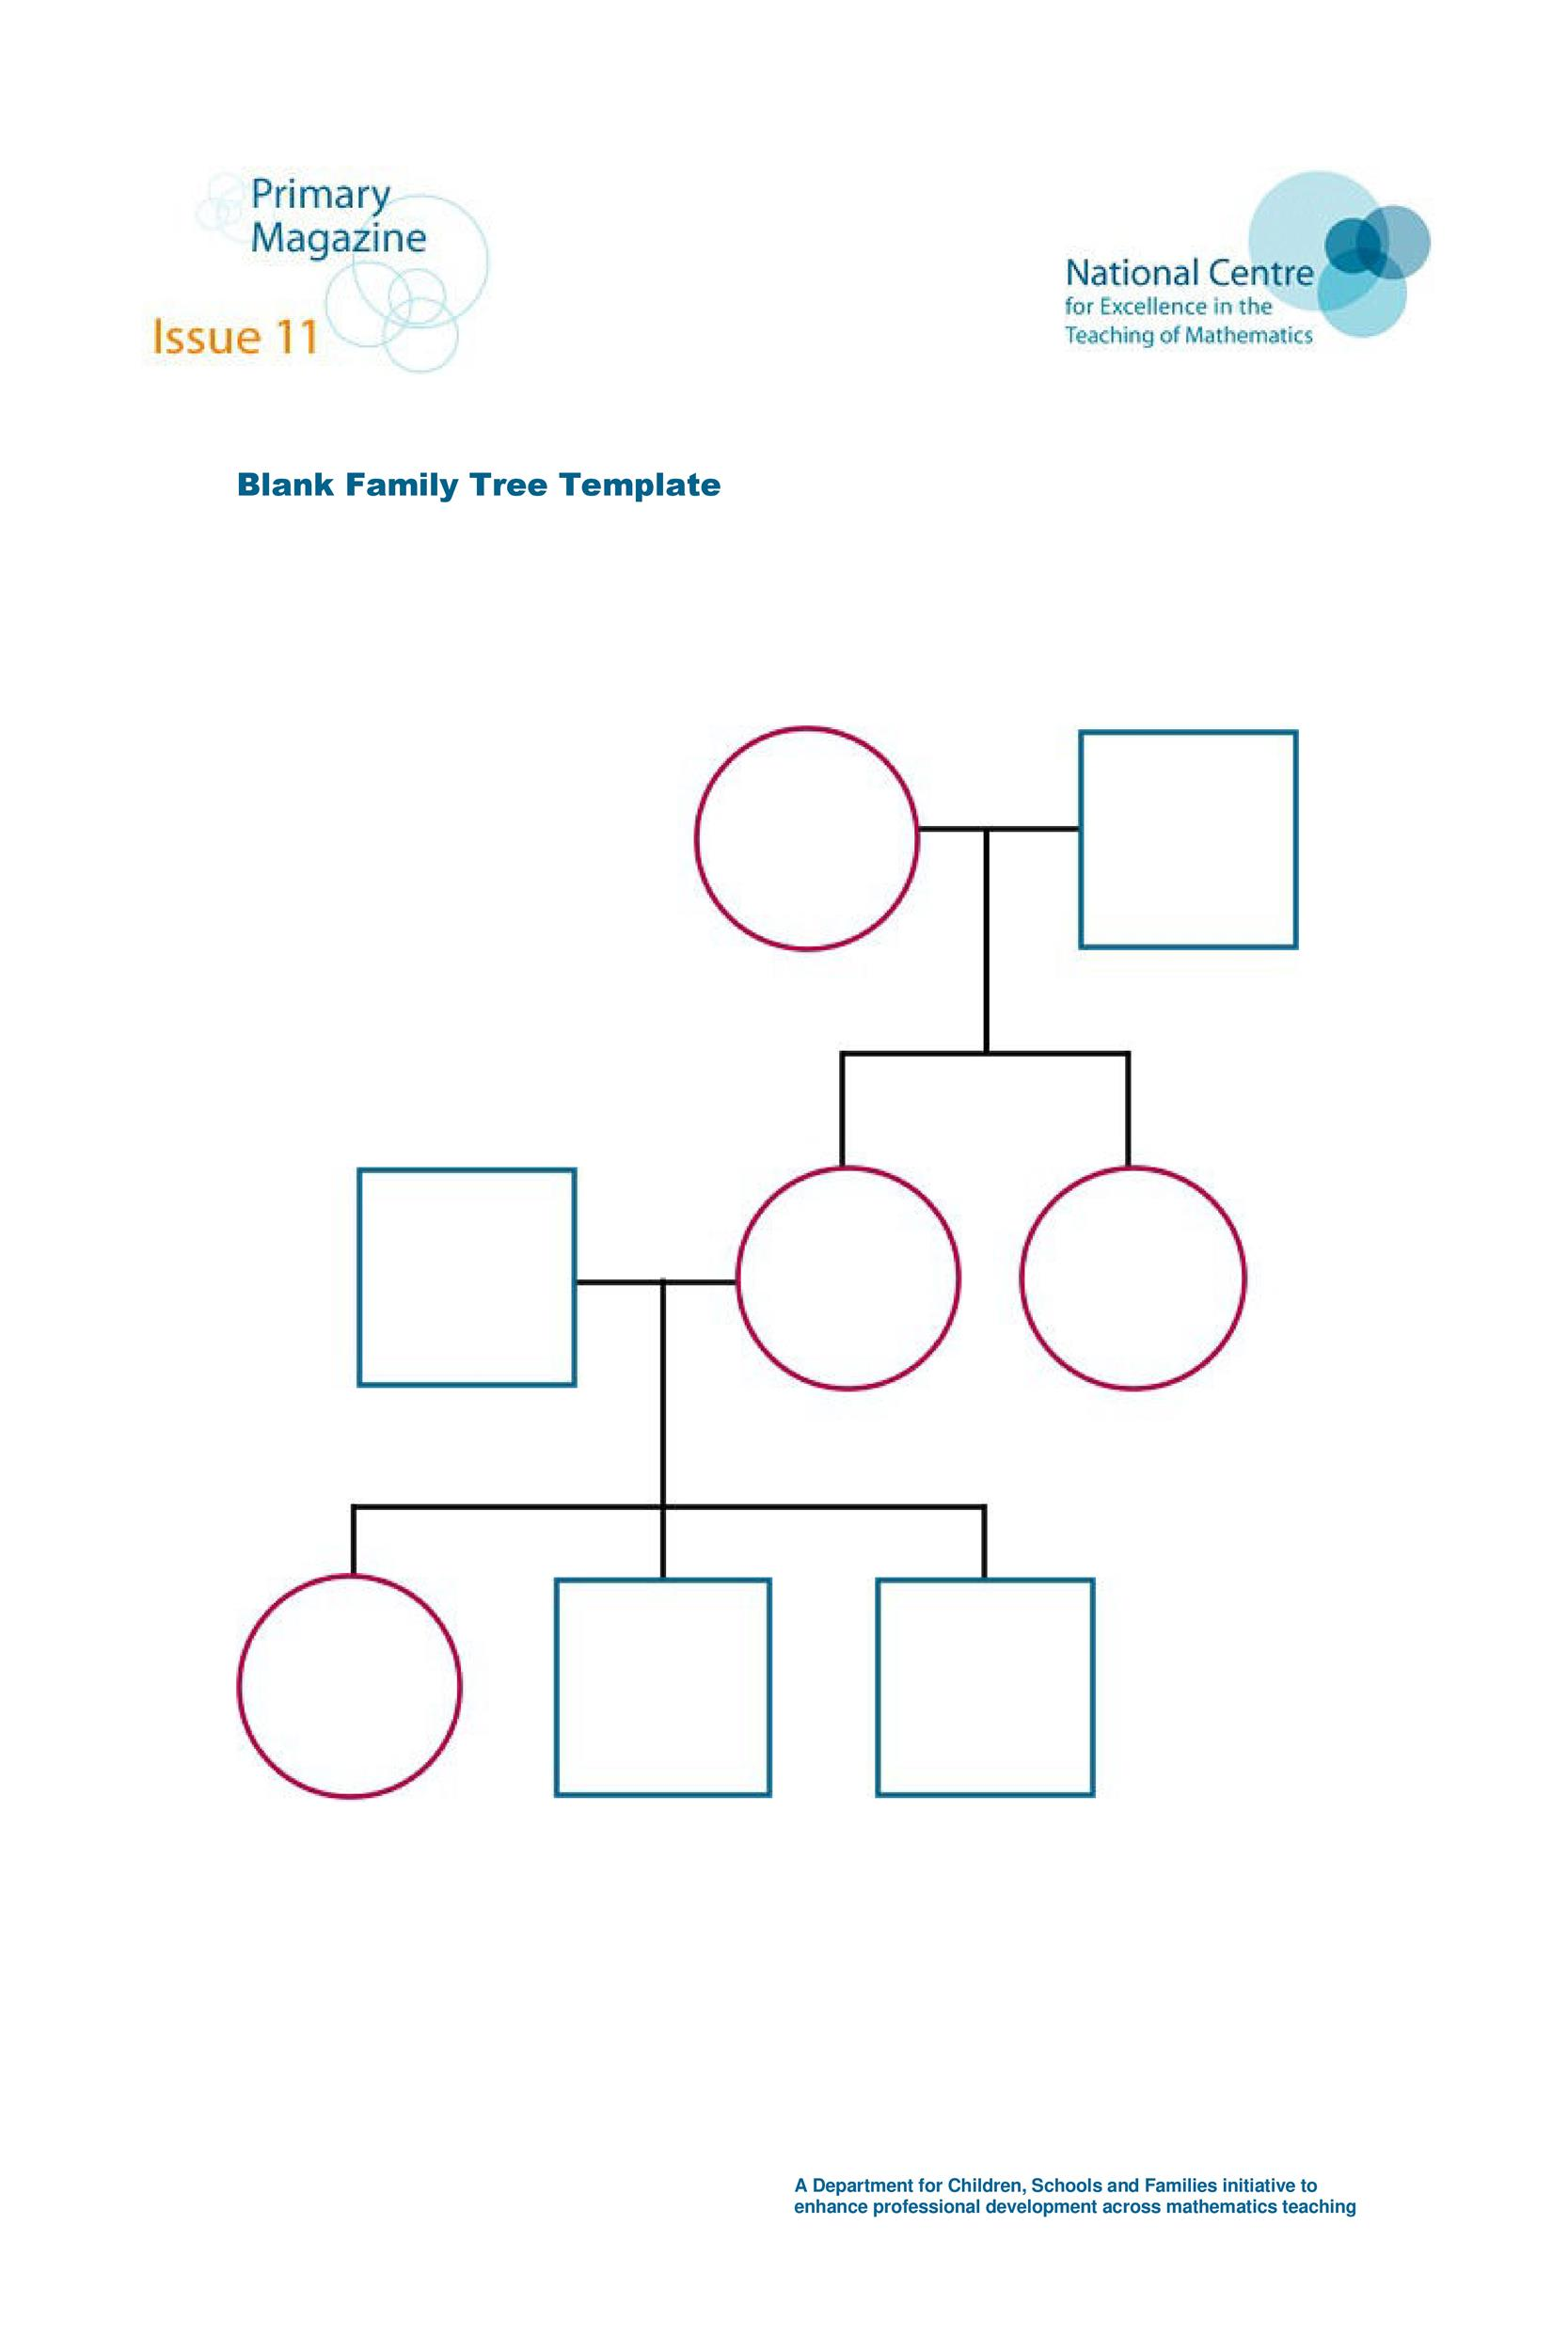 40 Free Family Tree Templates Word Excel PDF Template Lab – Blank Family Tree Template